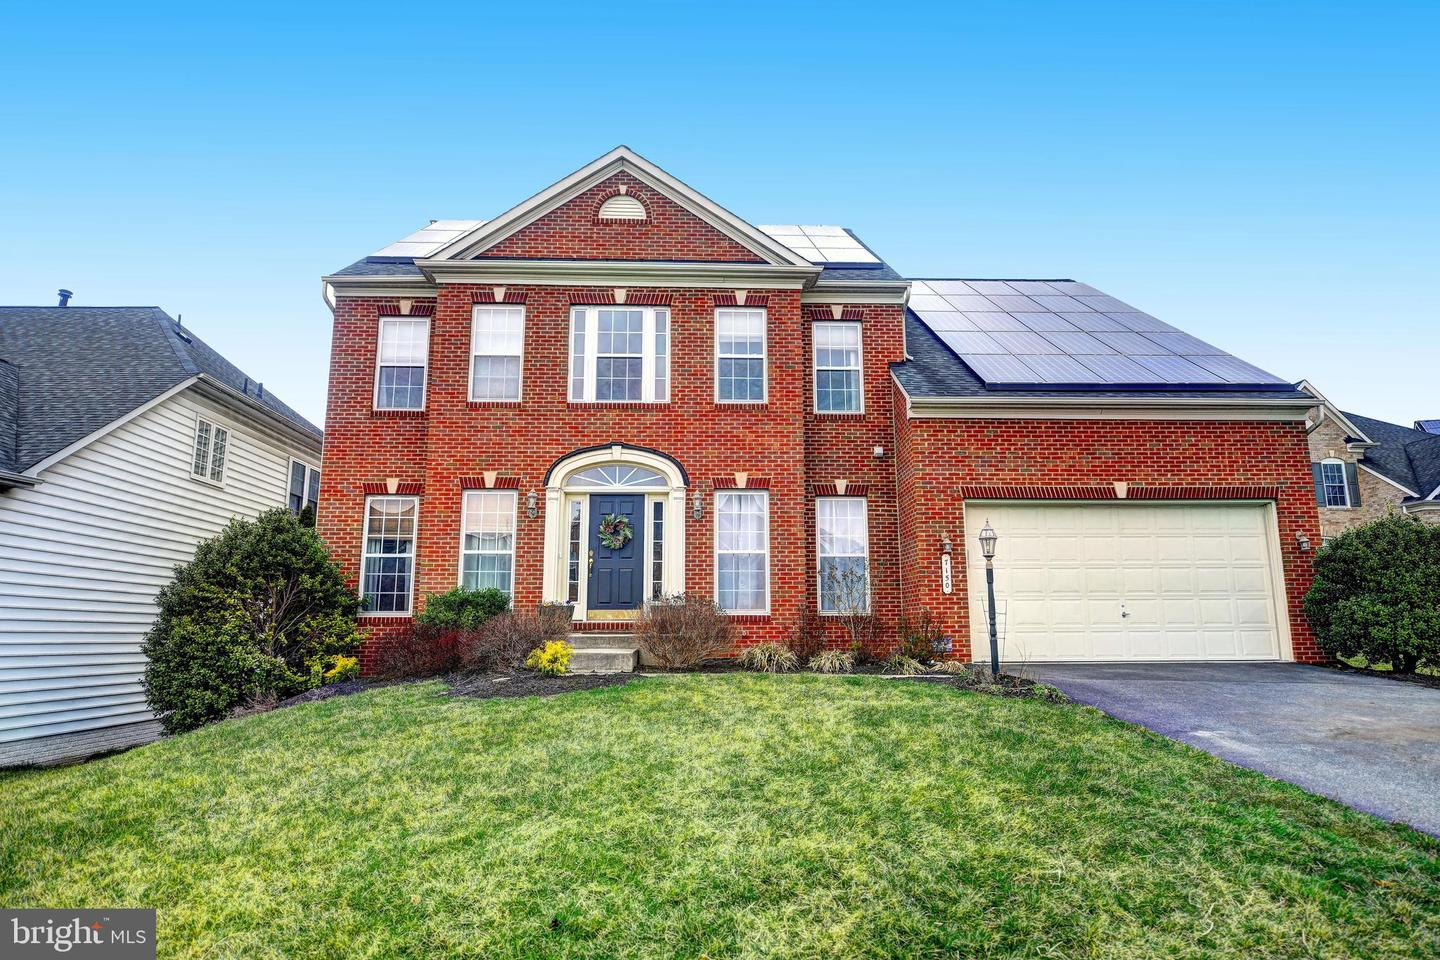 Single Family Home for Sale at 7150 Wedmore Court 7150 Wedmore Court Hanover, Maryland 21076 United States